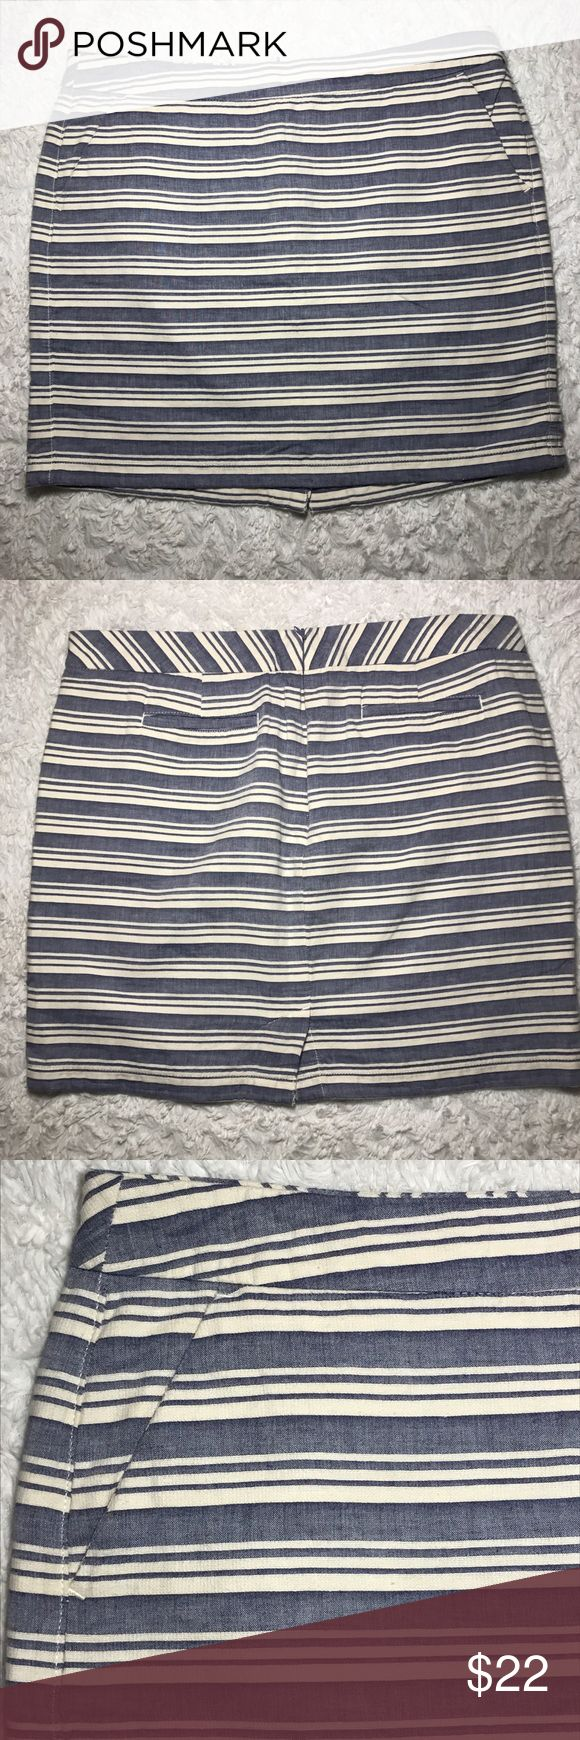 "Tommy Hilfiger Skirt Size 16 Size 16 skirt, 90% cotton, 10% Linen, hidden back zipper, front side pockets, faux pockets in back.  Measurements taken laying flat 19"" waist, 19"" length.  NWOT Tommy Hilfiger Skirts"